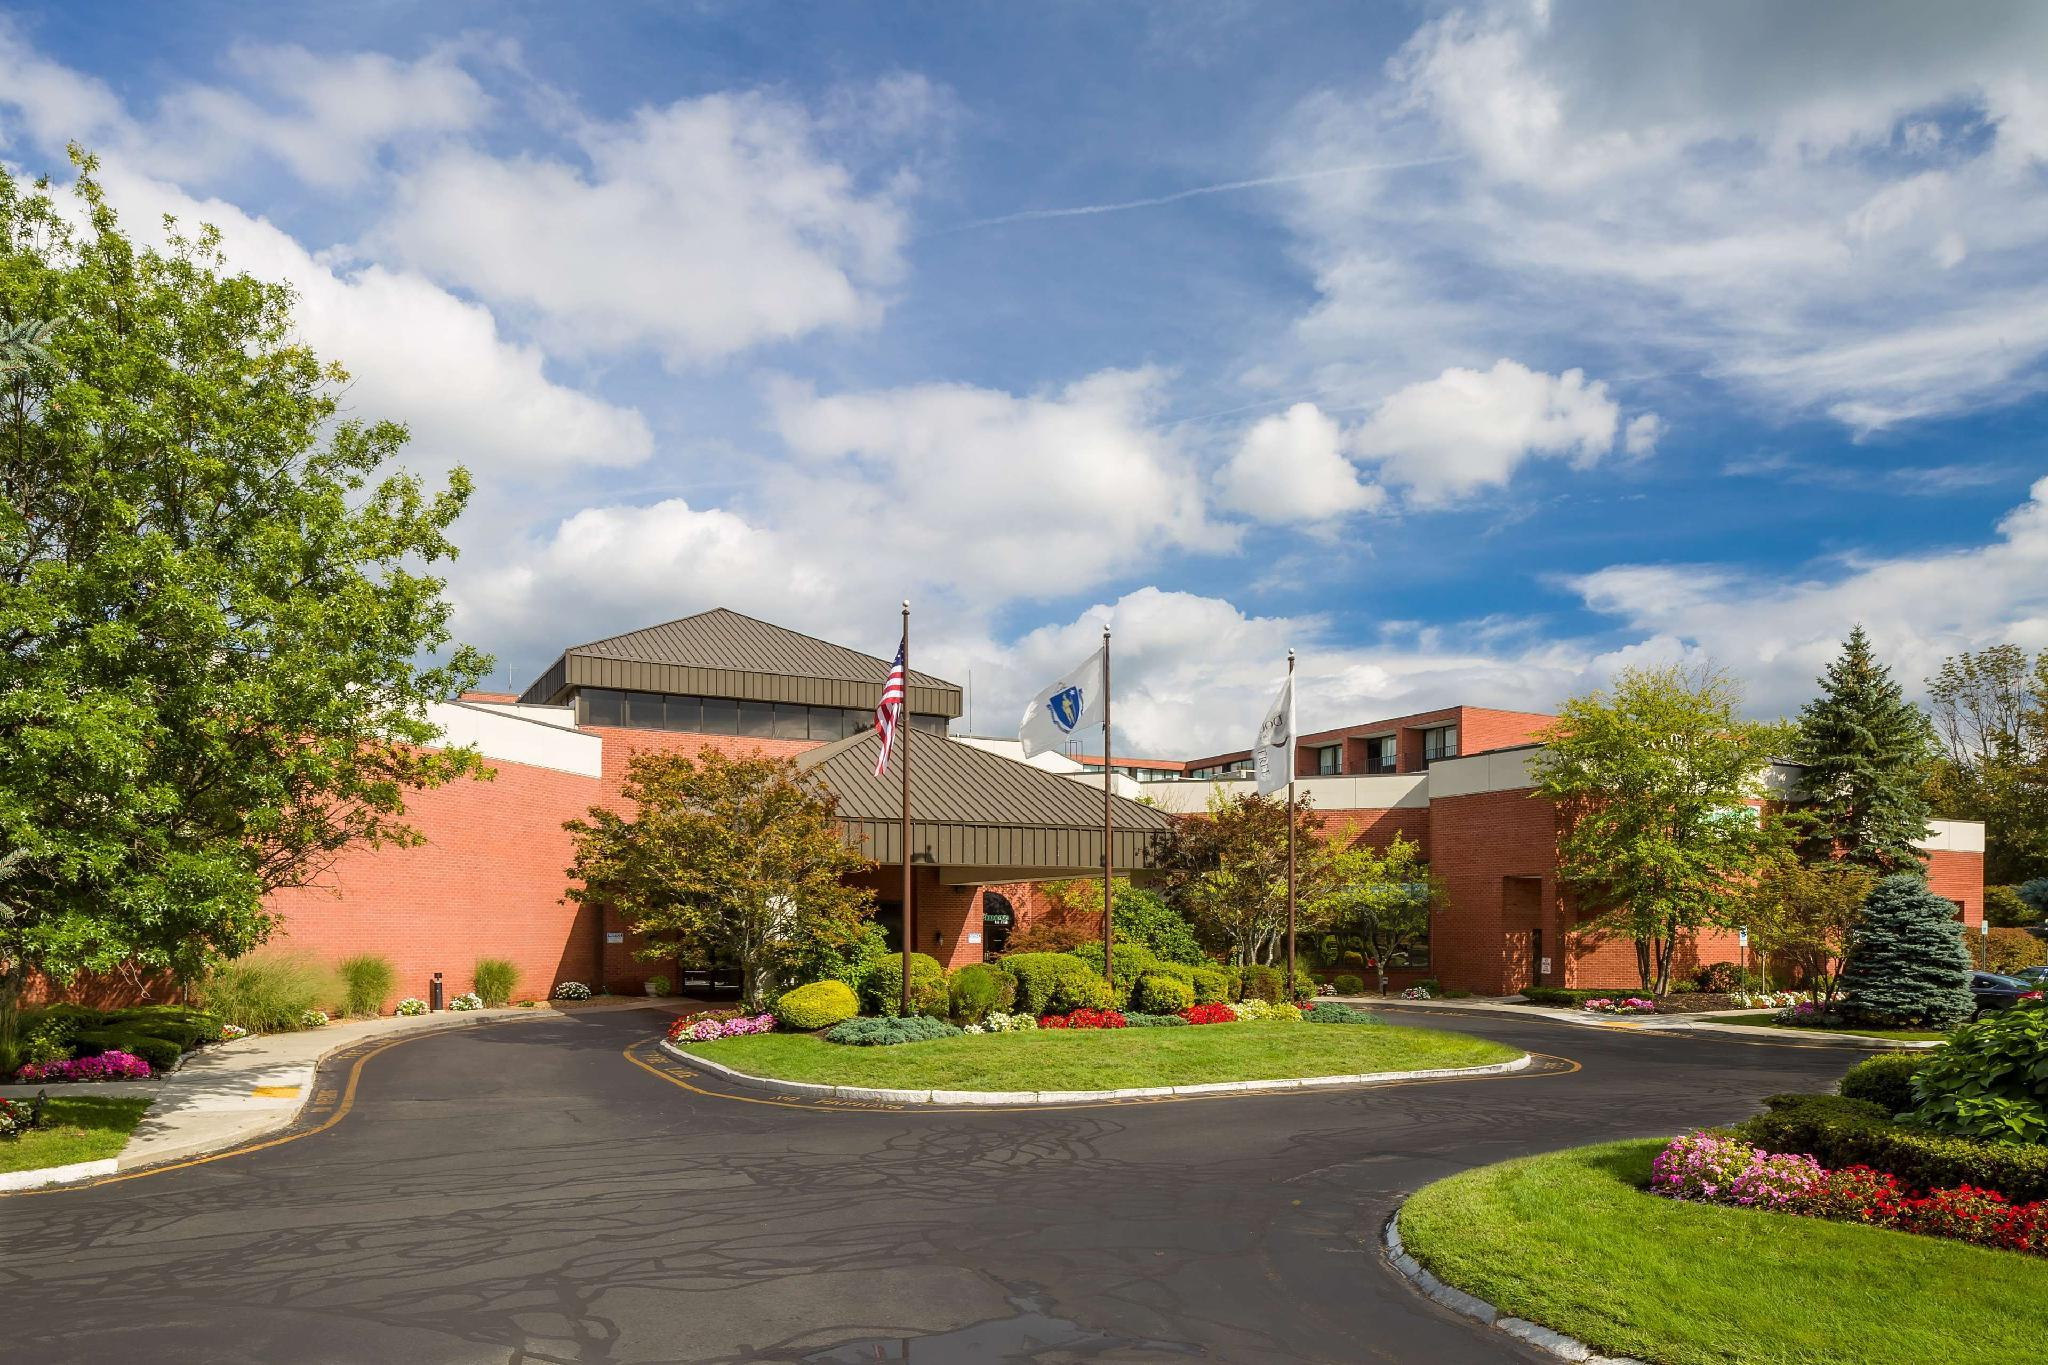 Doubletree By Hilton Boston Andover image